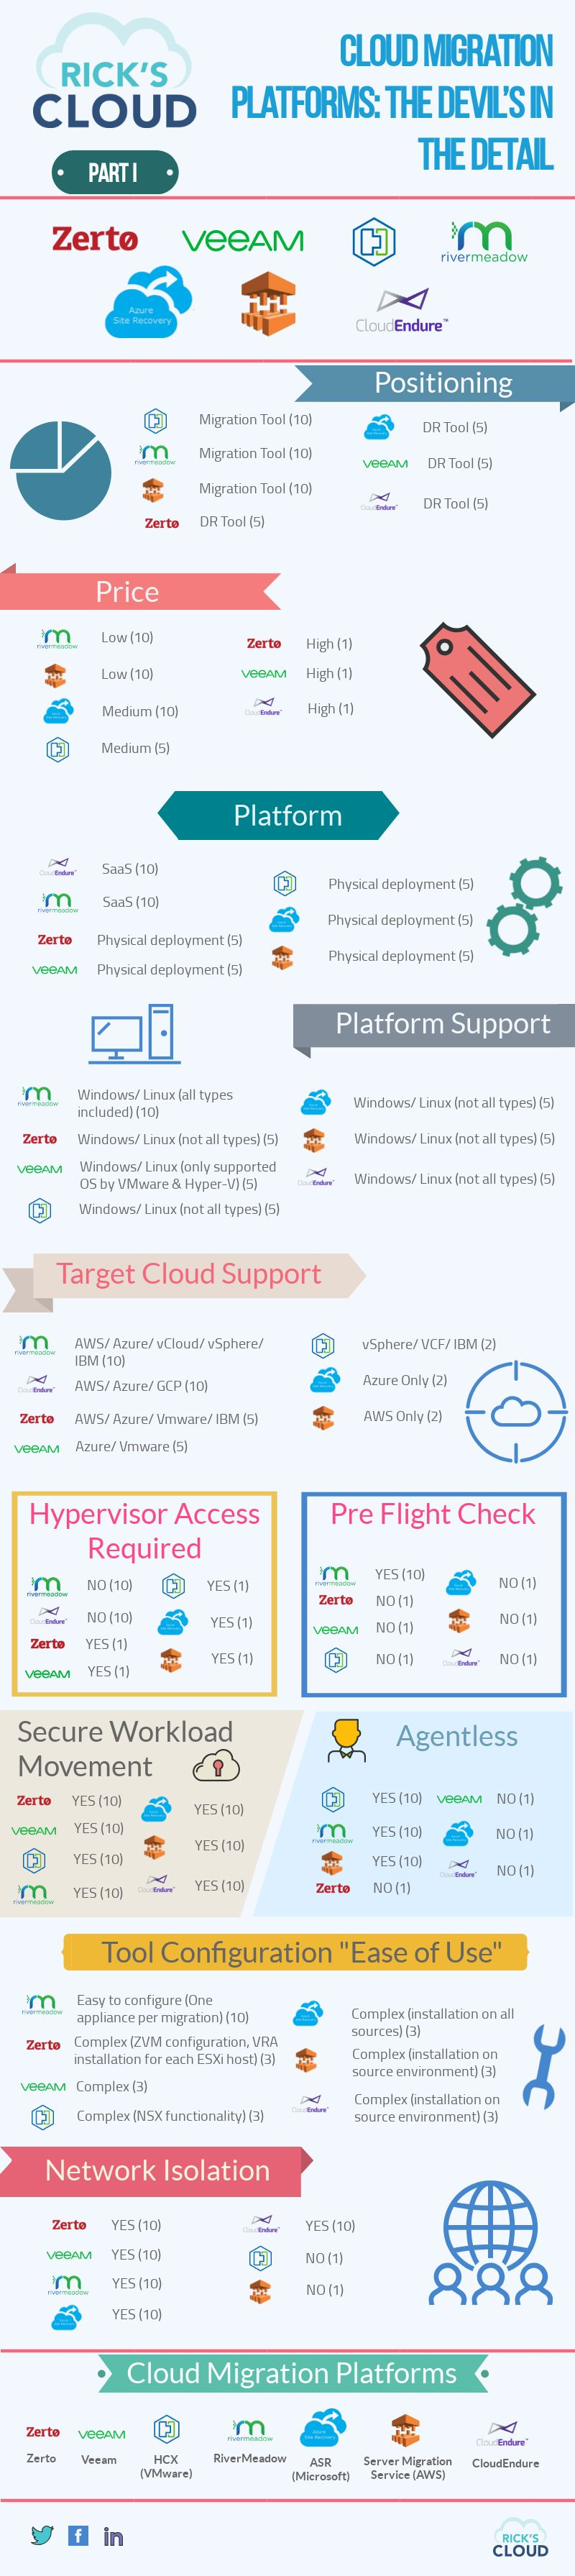 Cloud Migration Platforms